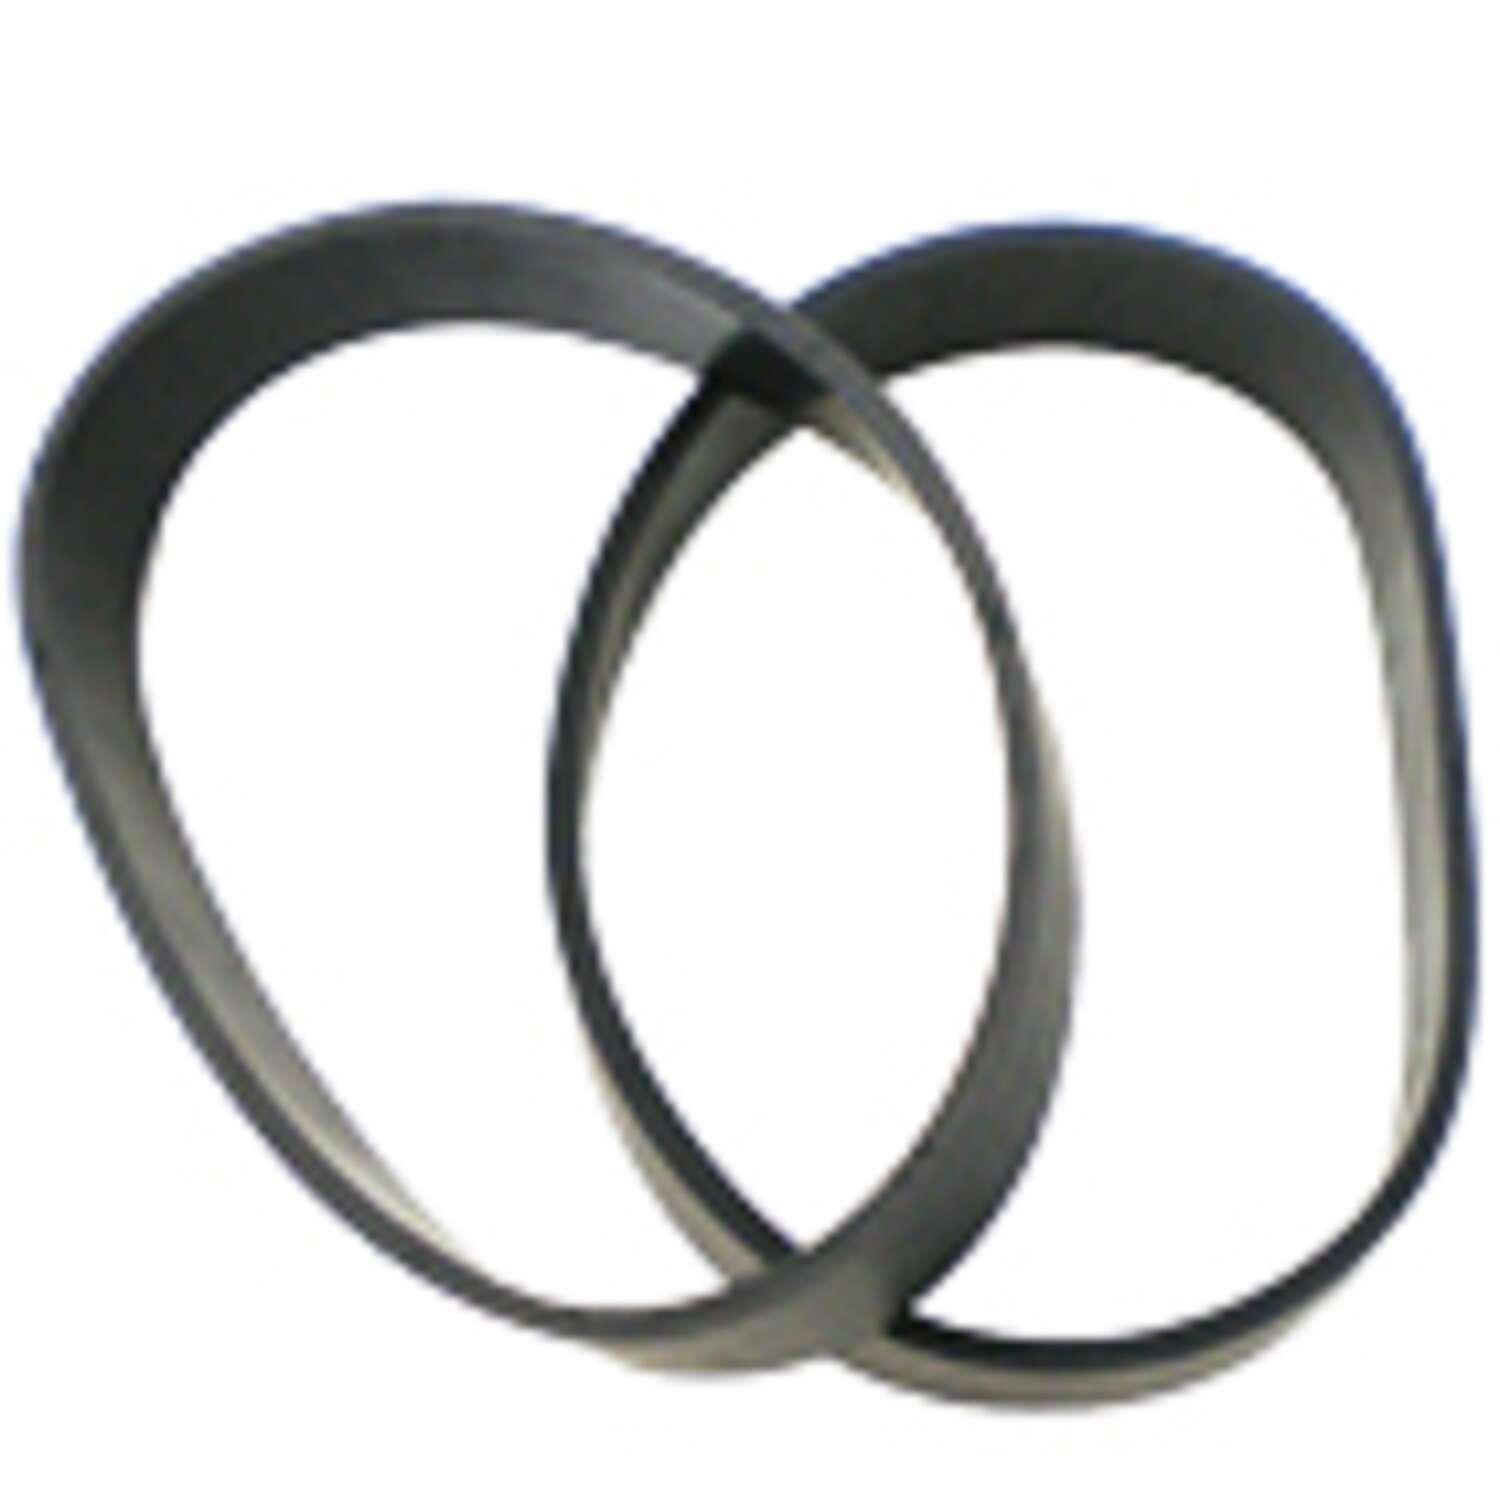 Bissell Lift-Off Vacuum Belt Style 8 For Use With Bissell Bagged 2 / Pack Bissell